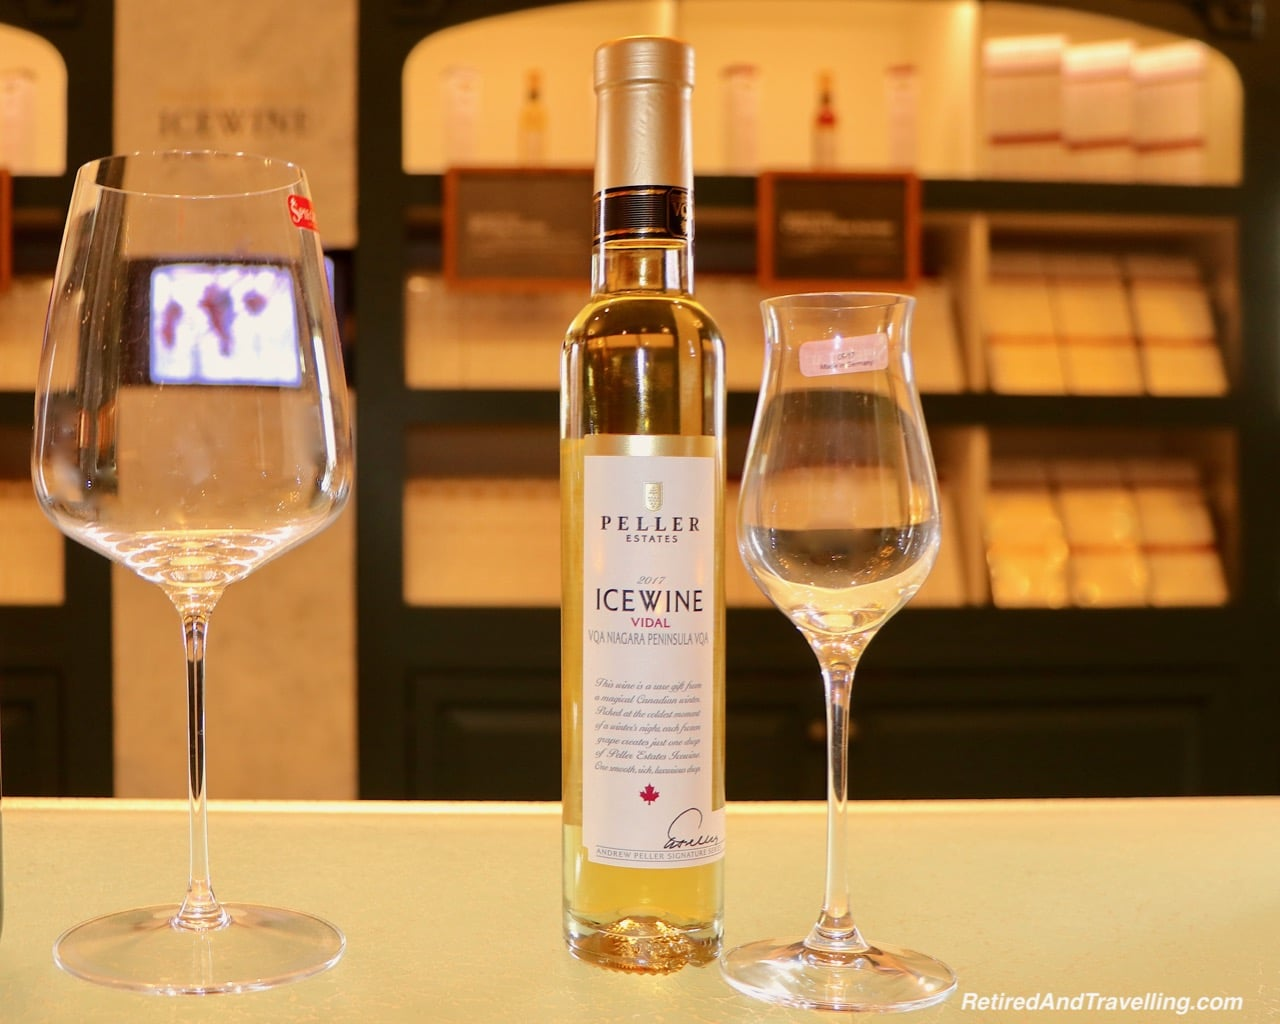 Peller Estates Winery Vidal - Icewine Tasting in Niagara.jpg